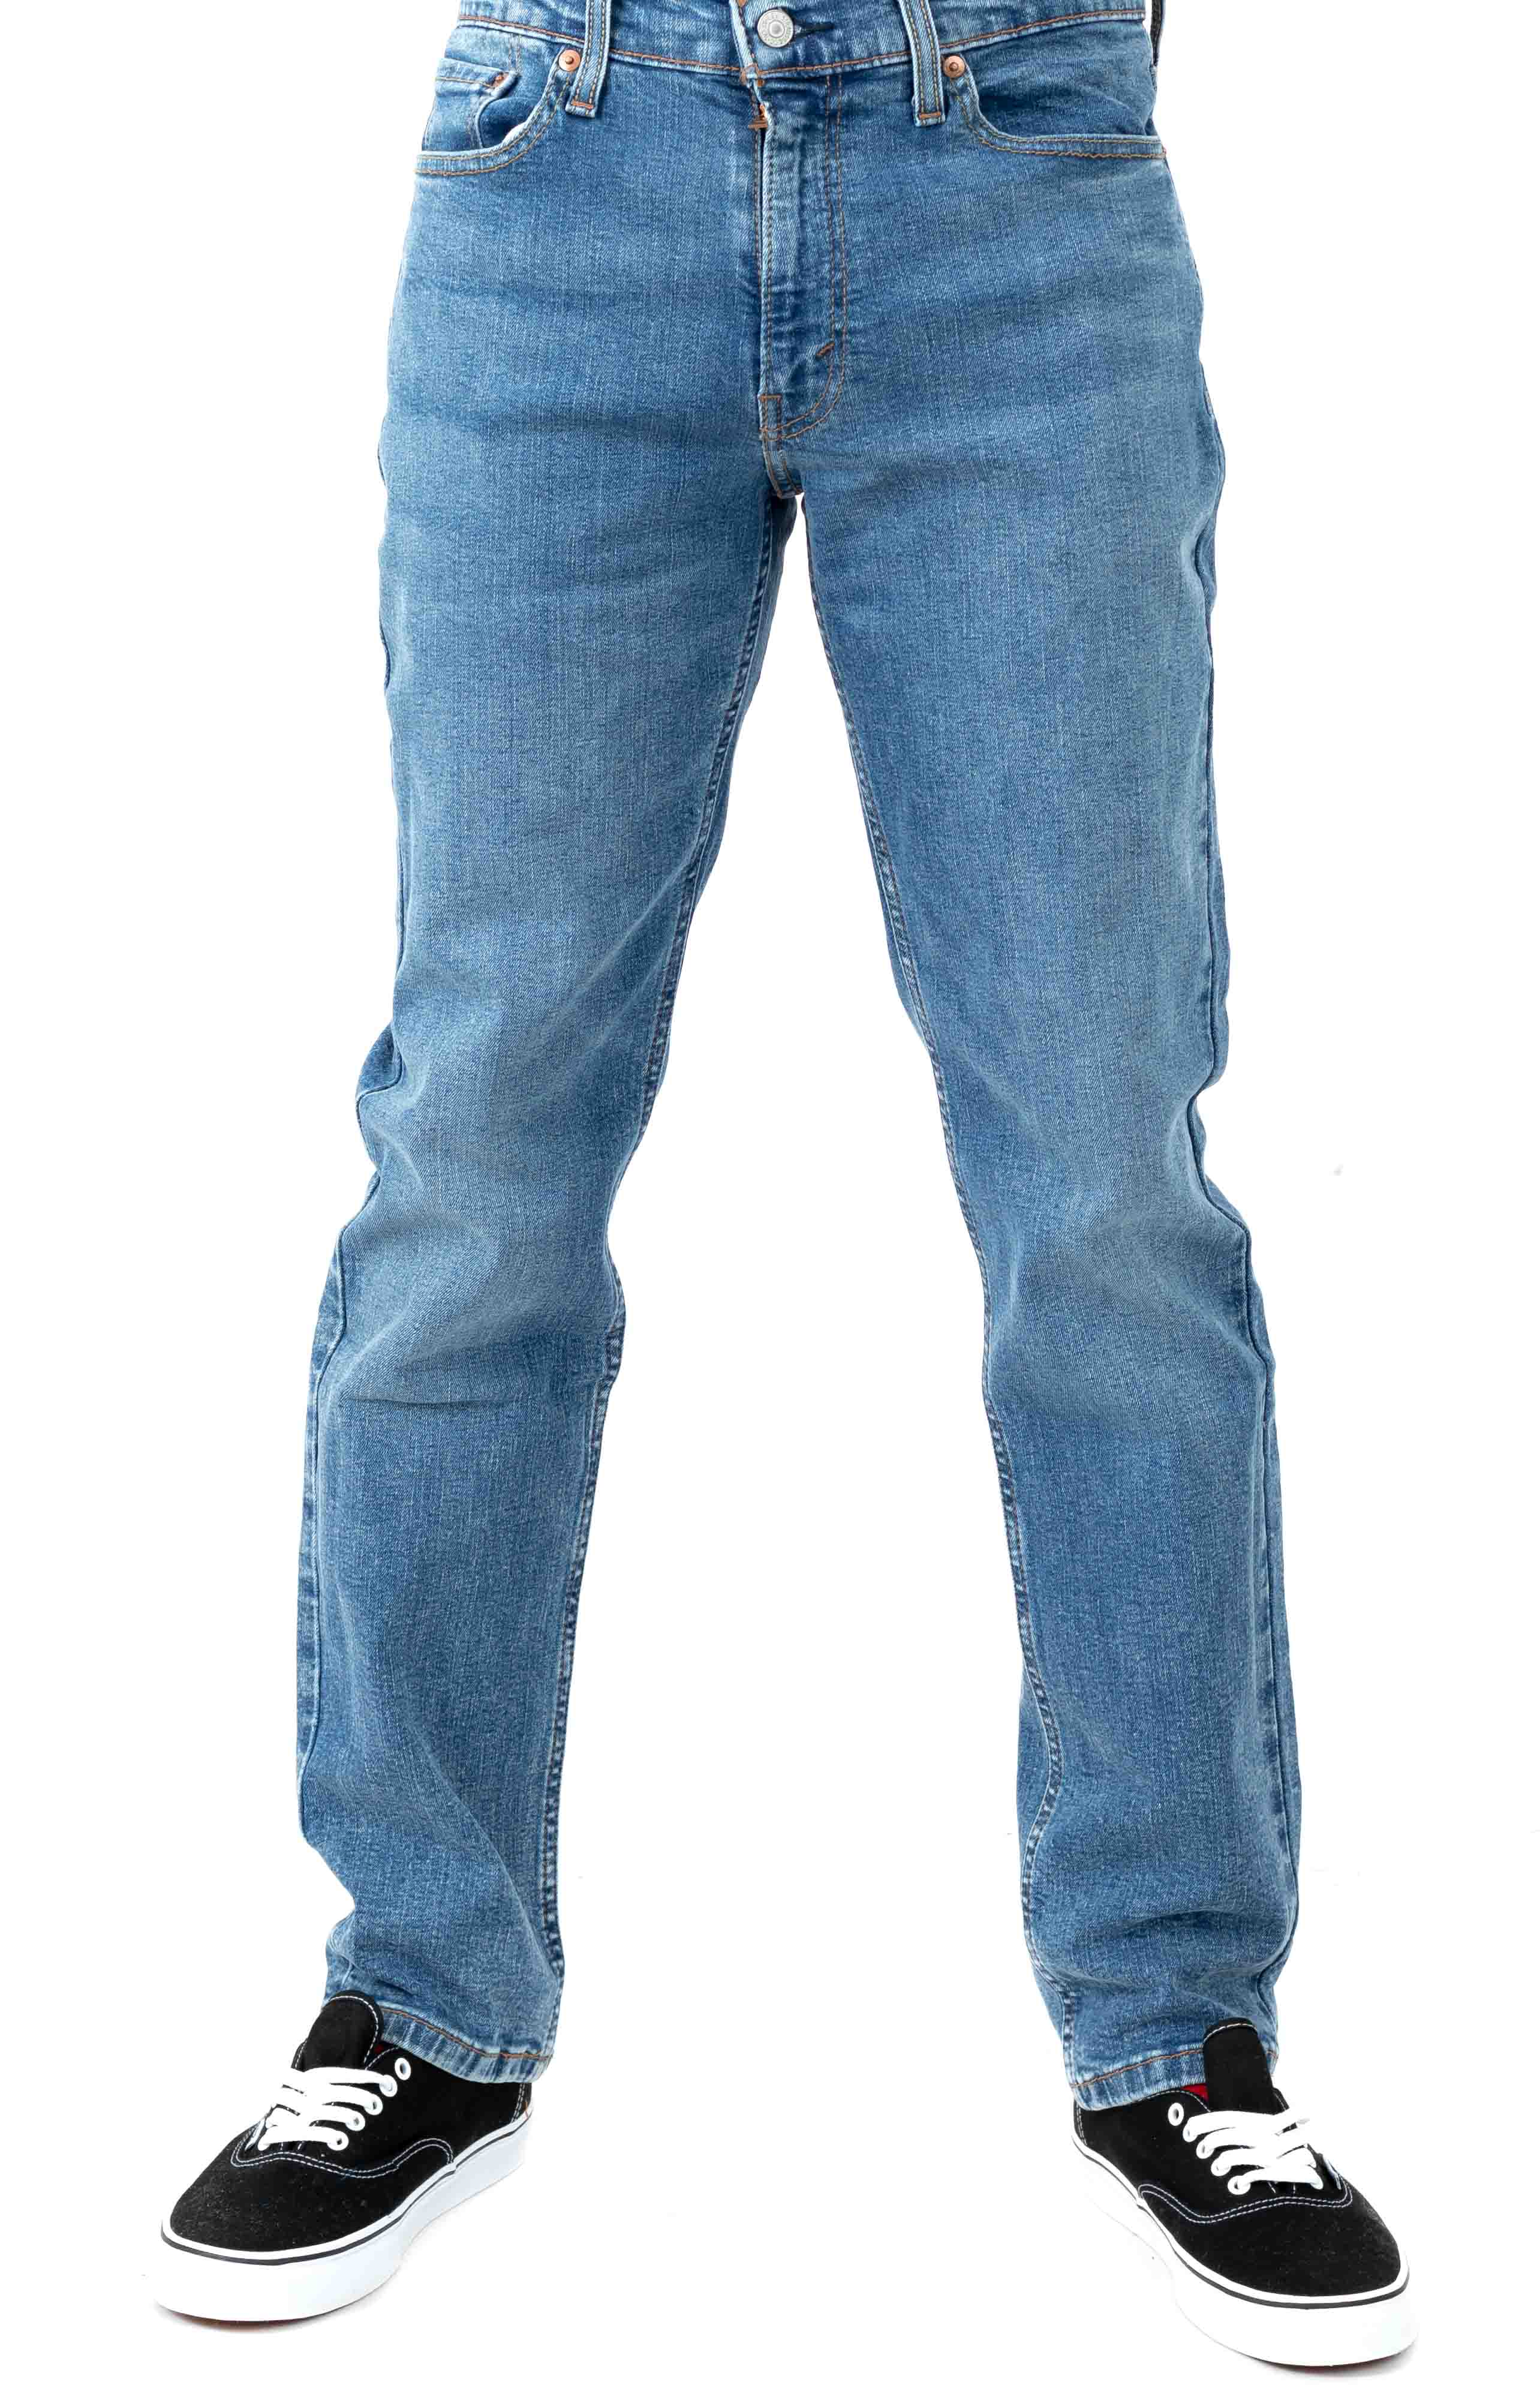 511 Slim Fit Jeans - The Banks  2